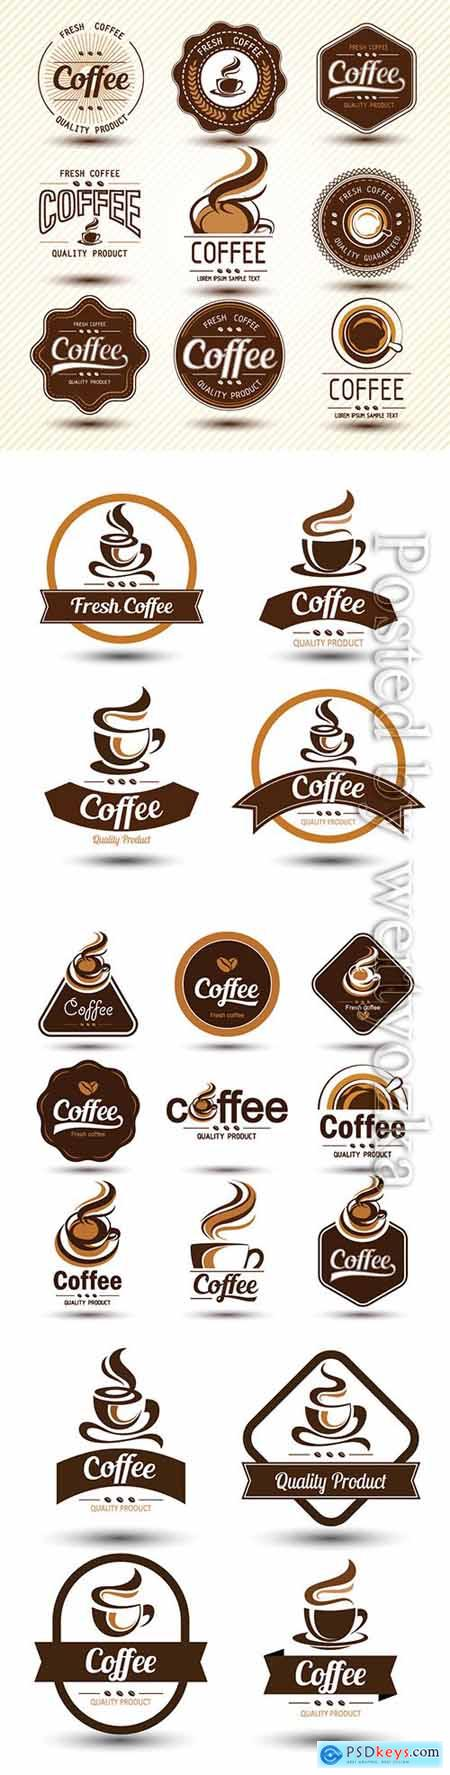 Coffee label collection vector illustration